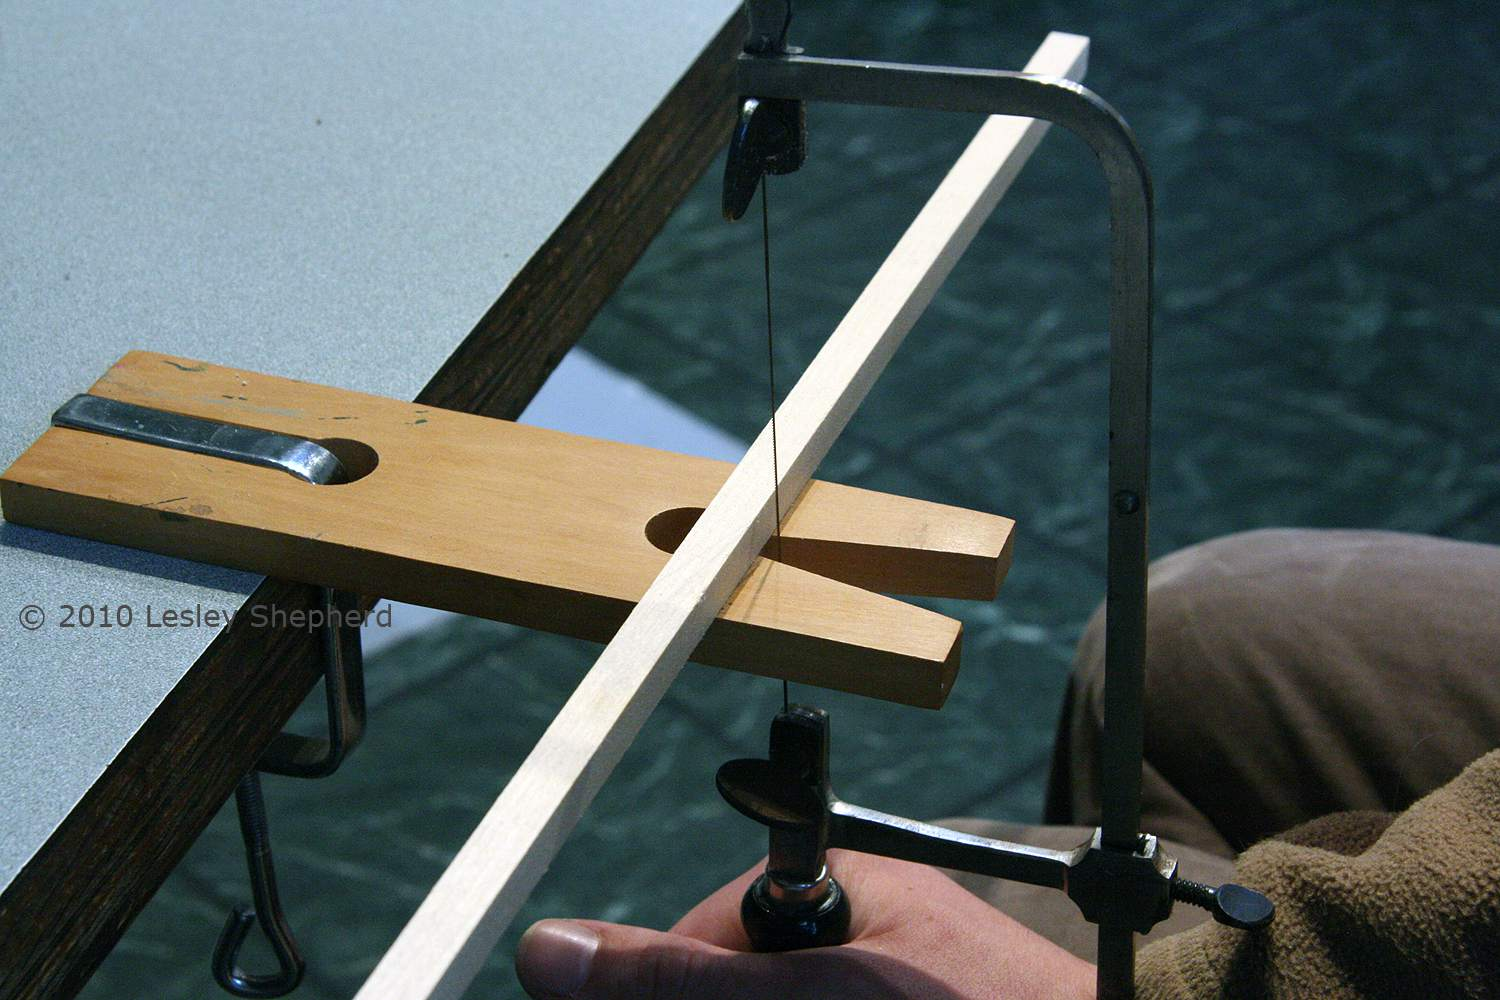 Jeweler's bench pin showing the position used for the saw and the material being braced.